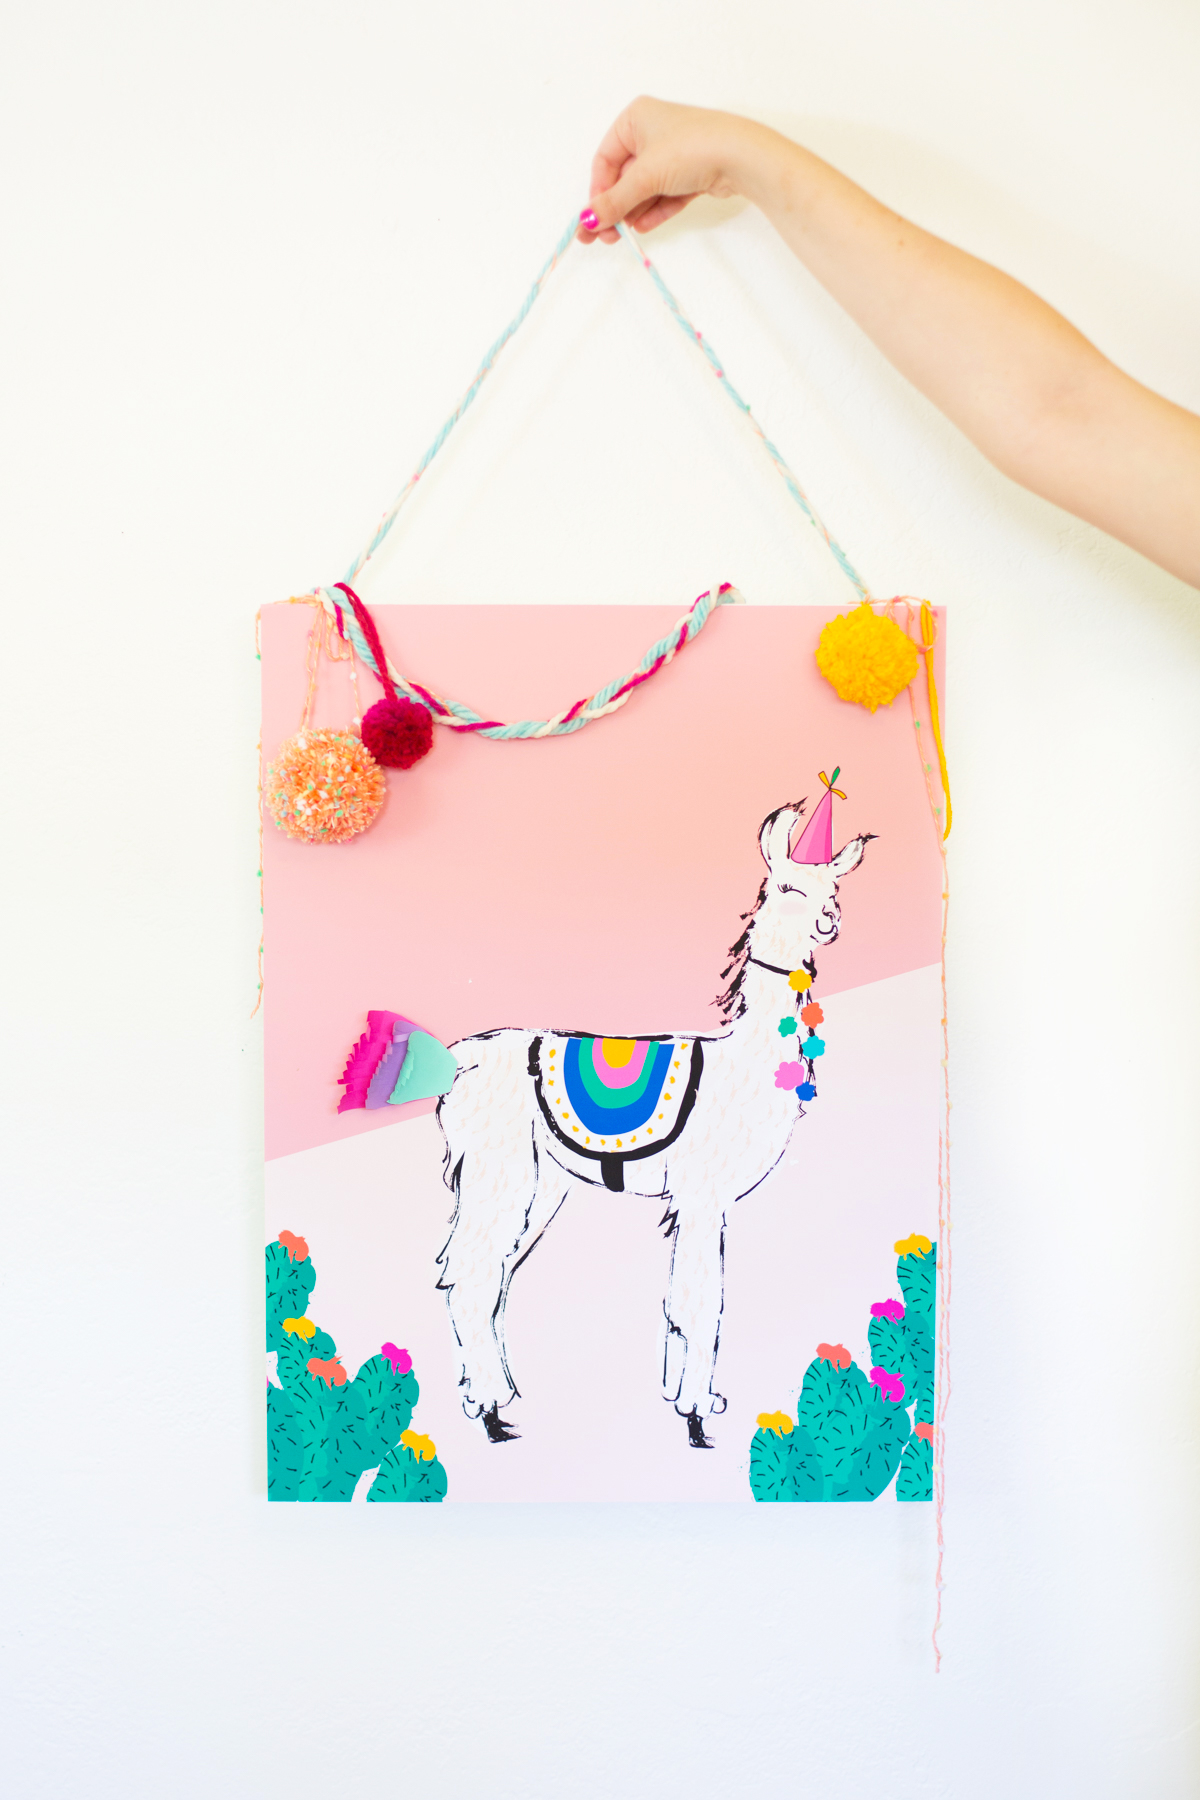 pin-the-tail-on-the-llama-game-7